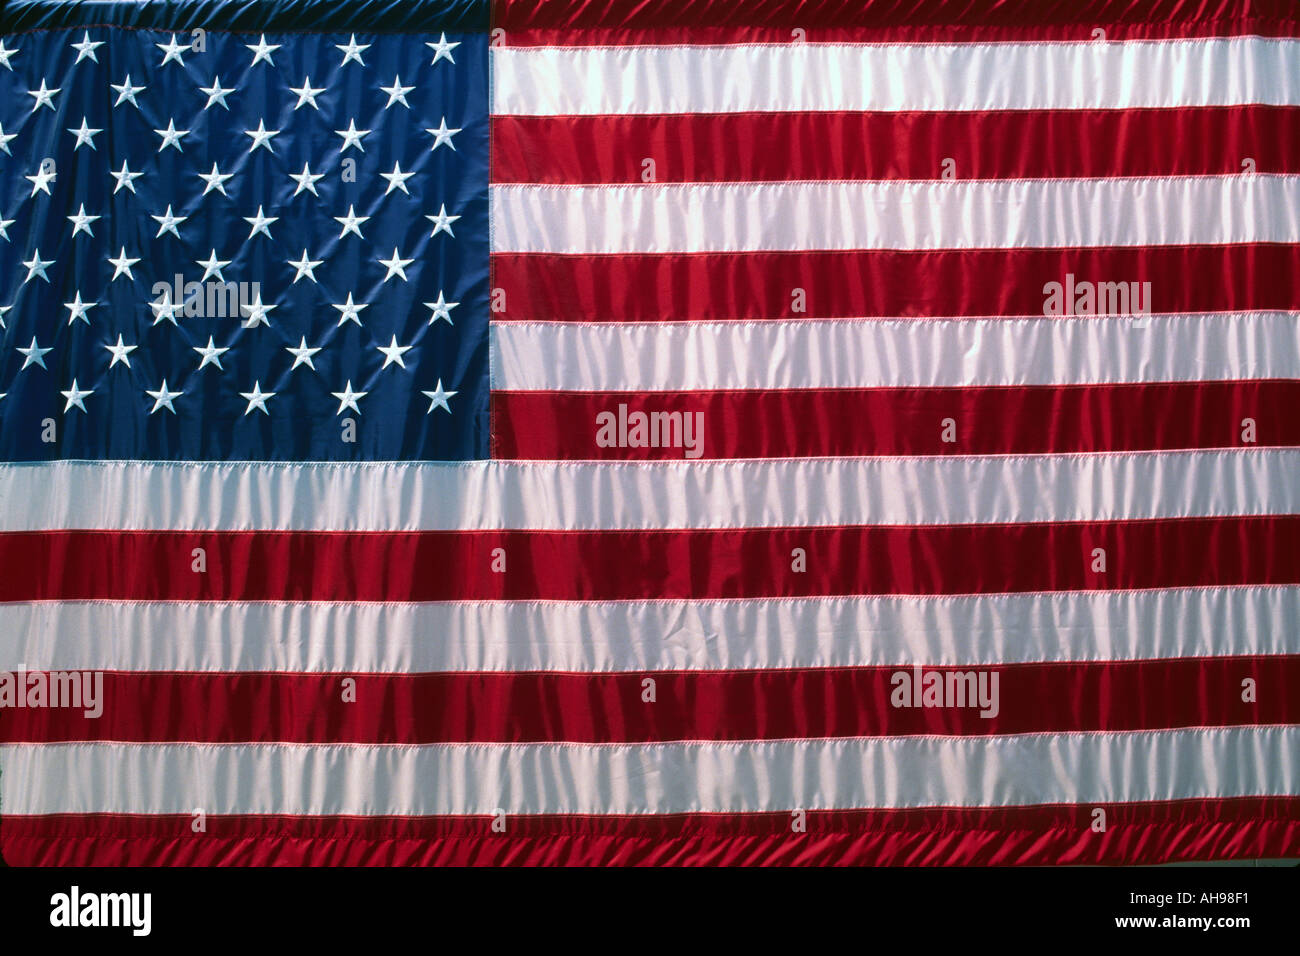 American flag hanging on a wall - Stock Image